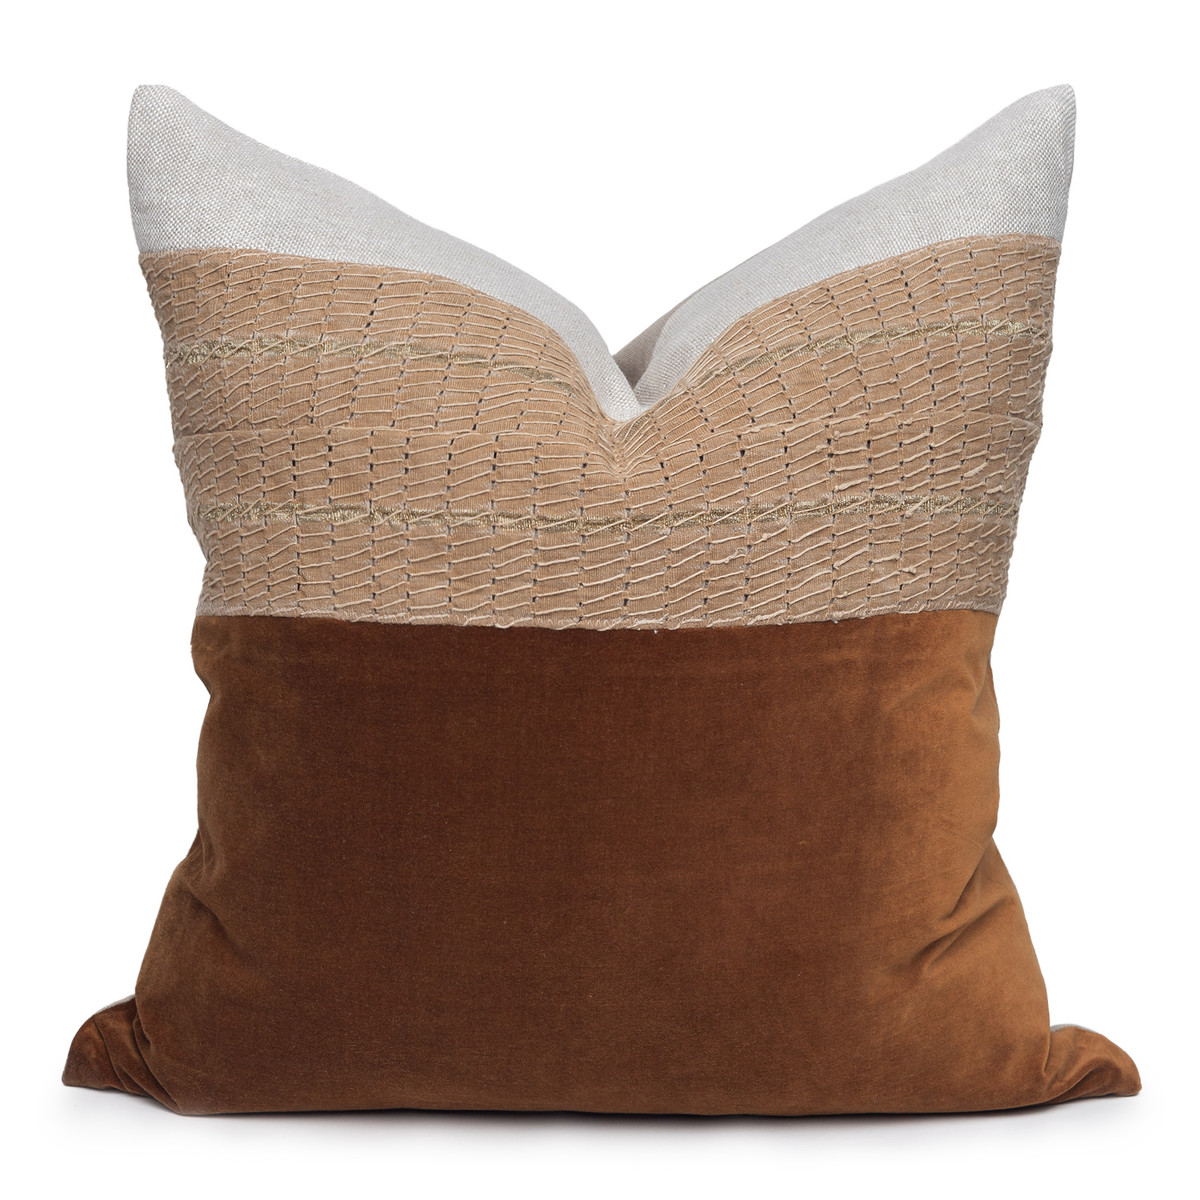 Scarlet Luxe Vintage Pillow with African Aso Oke Textiles and 100% Eco-friendly Topanga linen in Natural & Cotton Velvet- 22- Front View